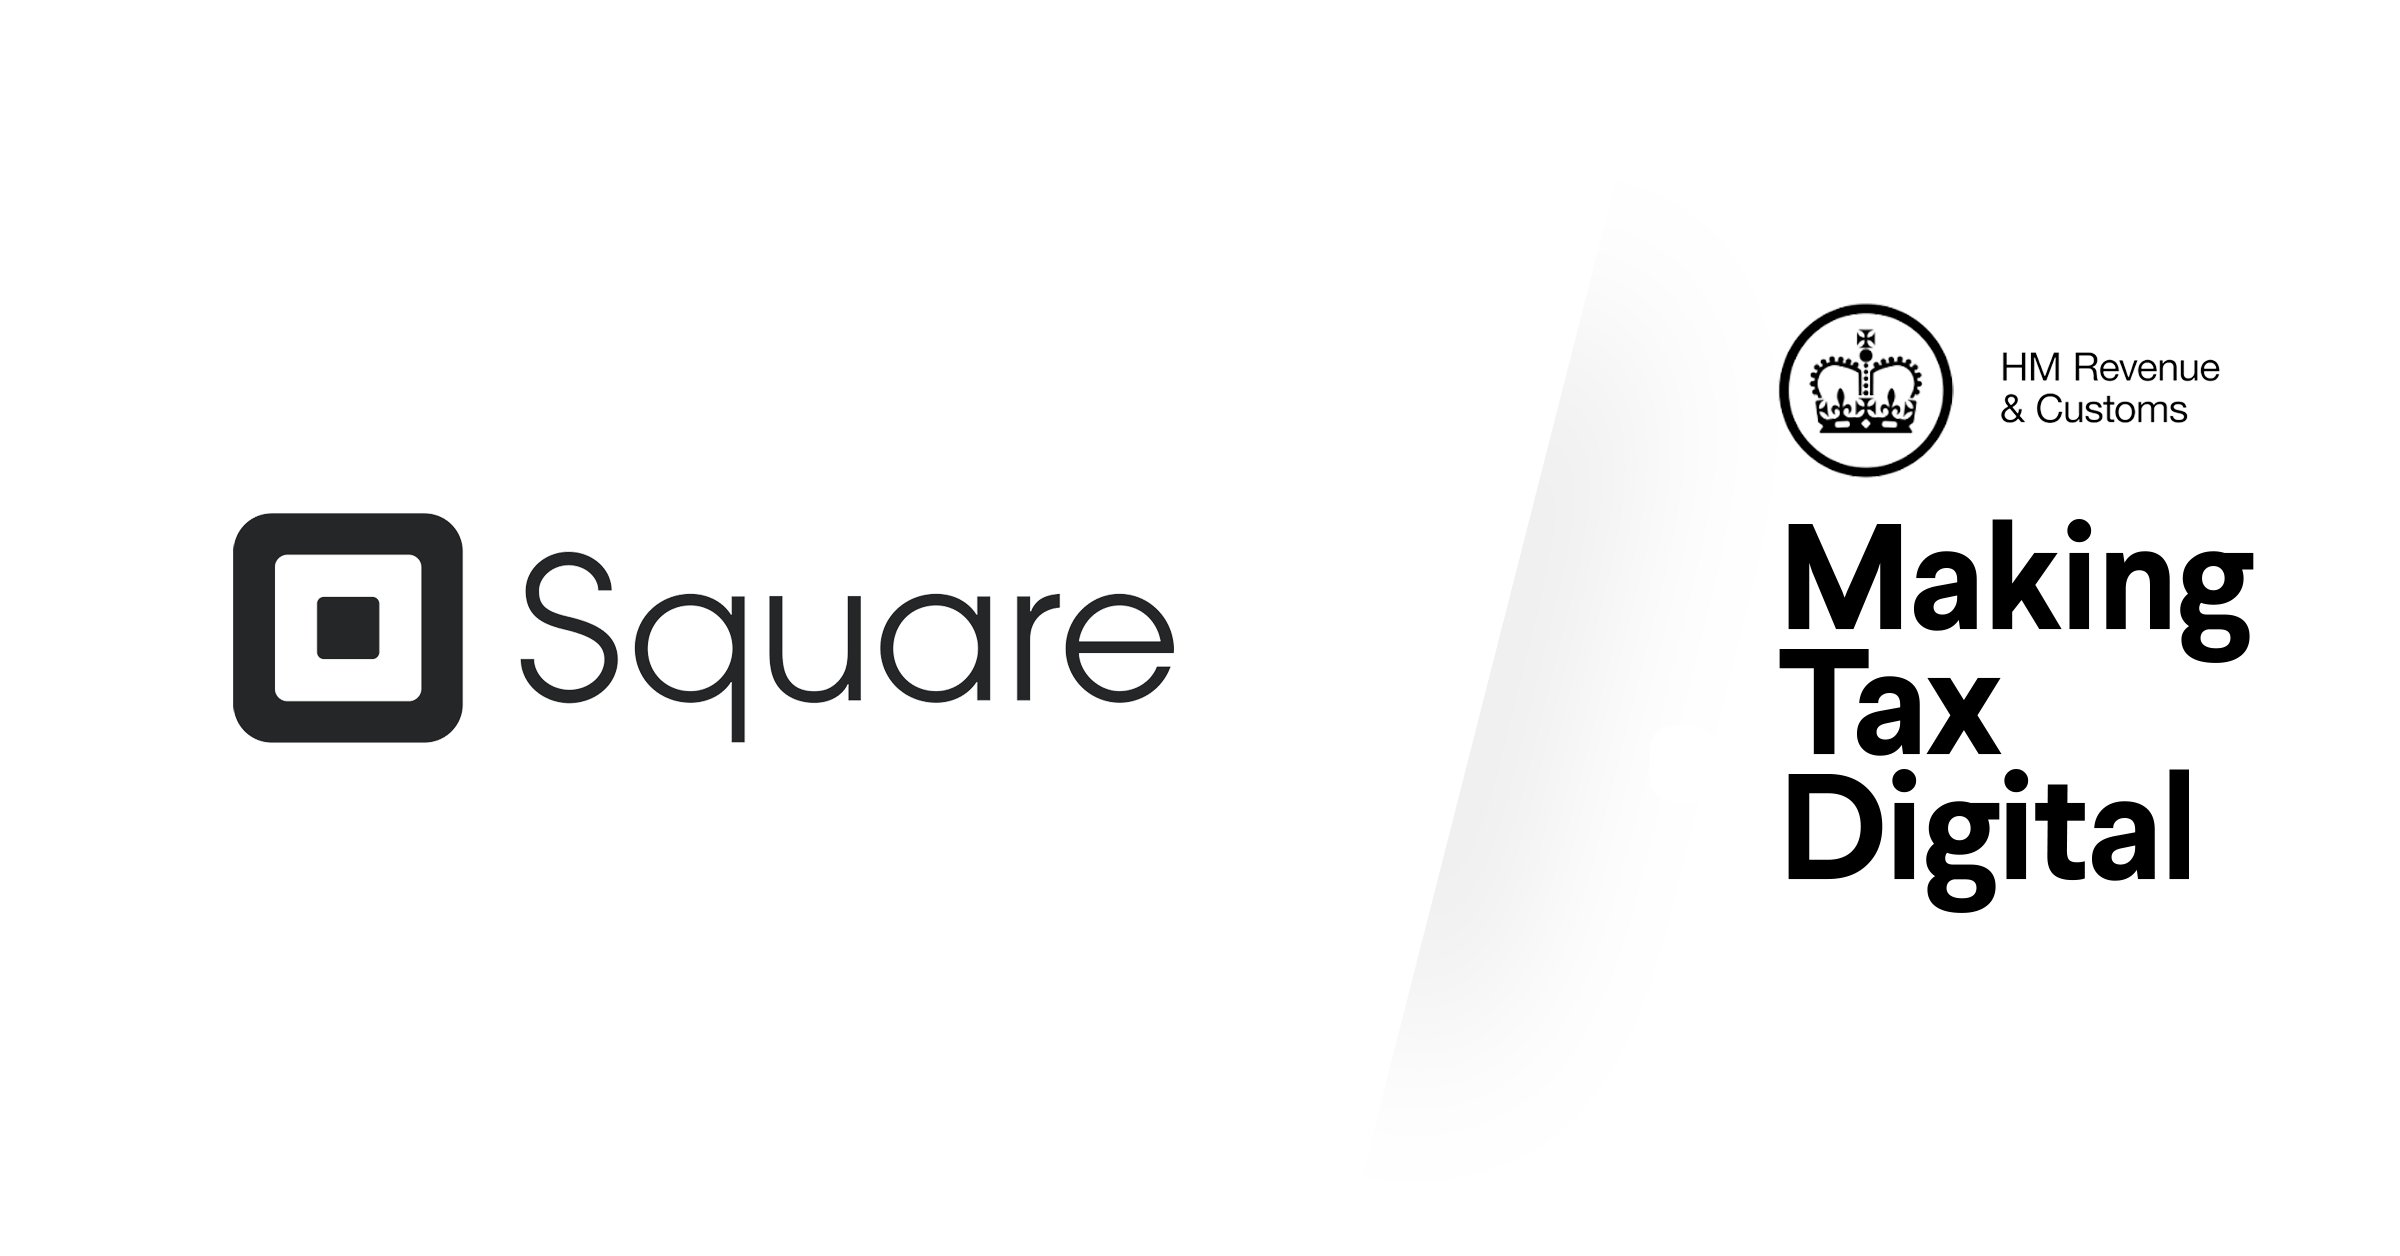 Make Tax Digital for Square Sellers